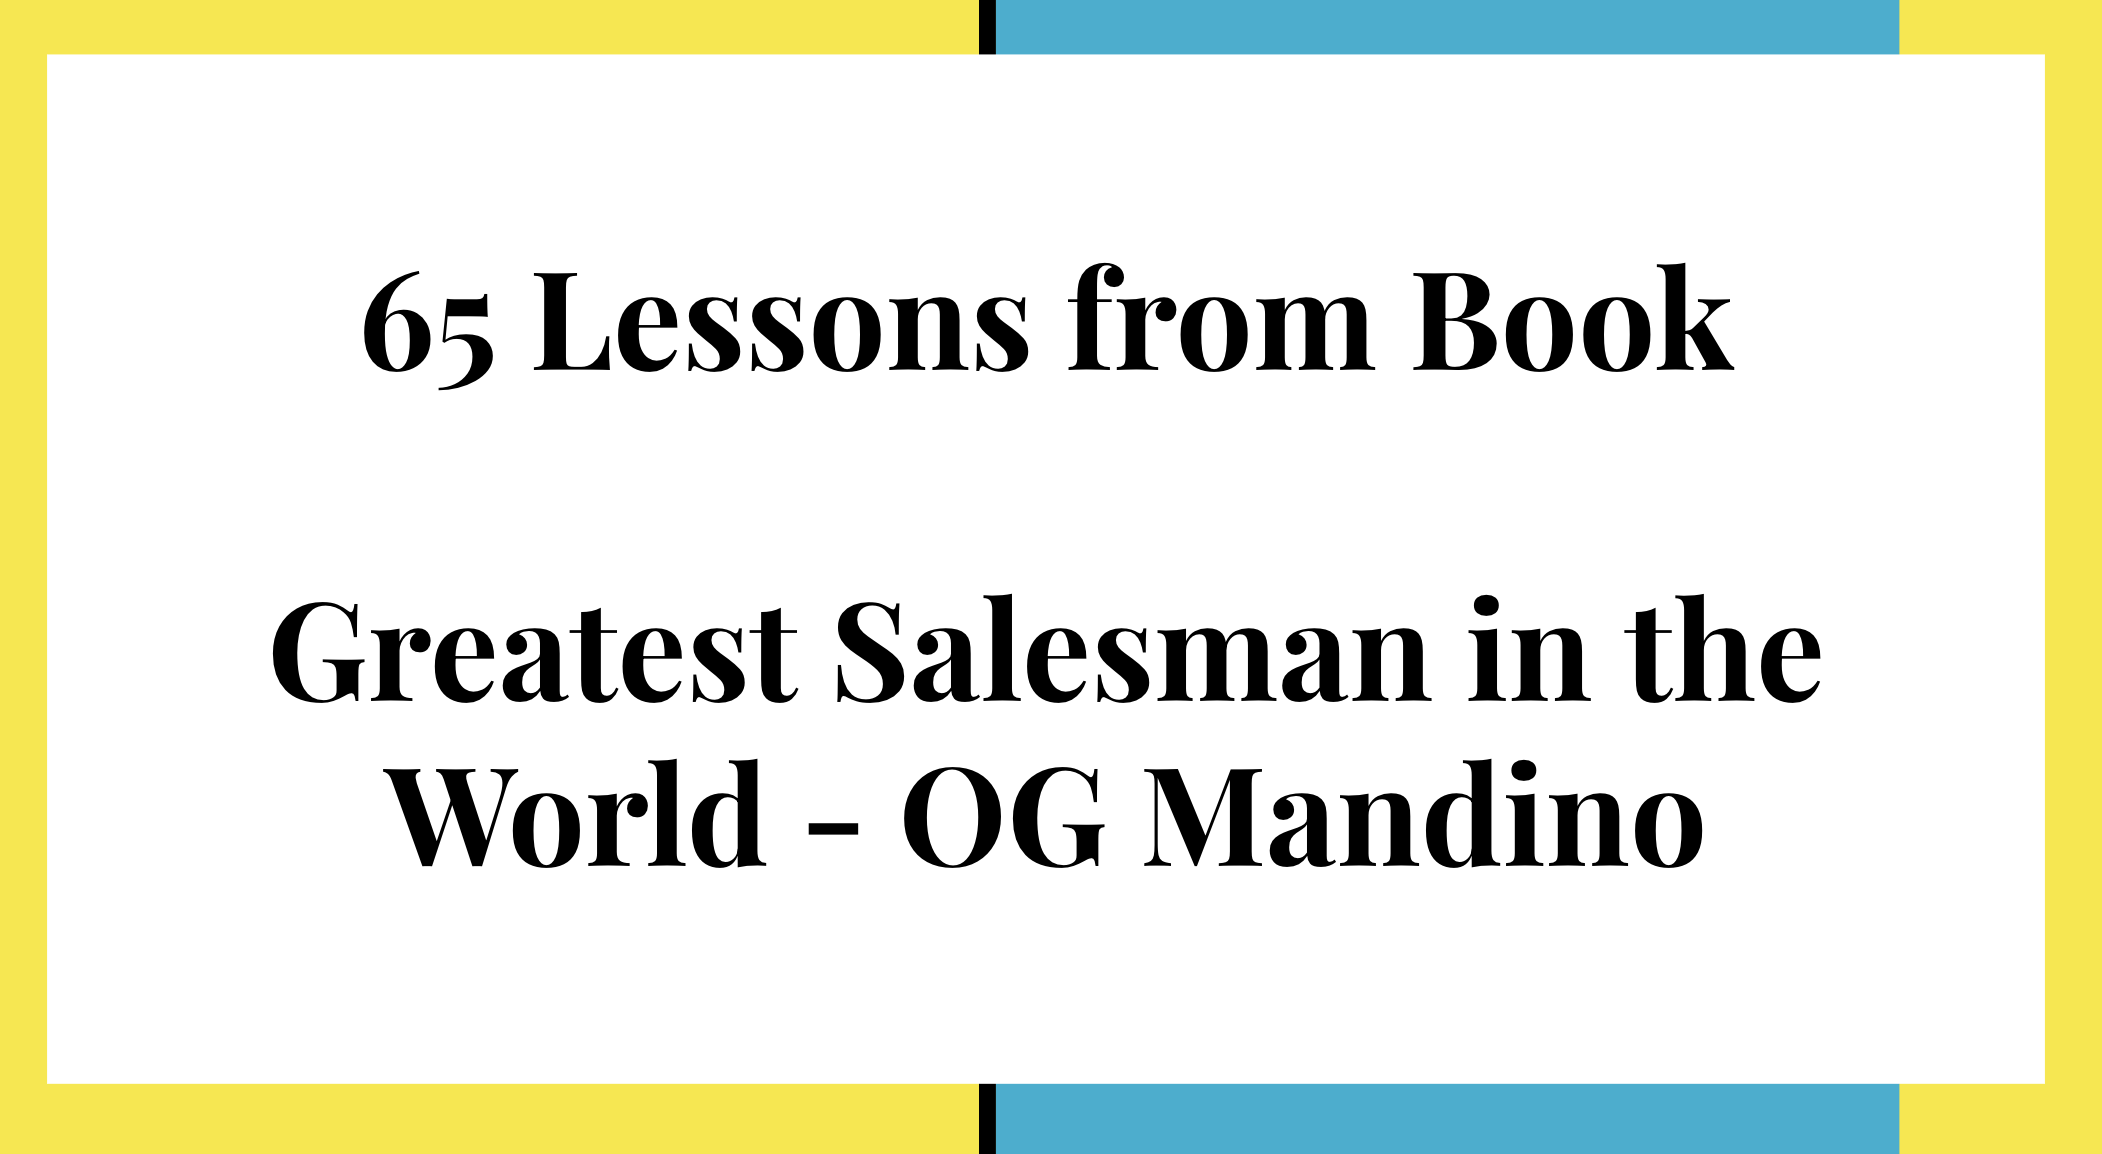 65 lessons from greatest salesman in the world